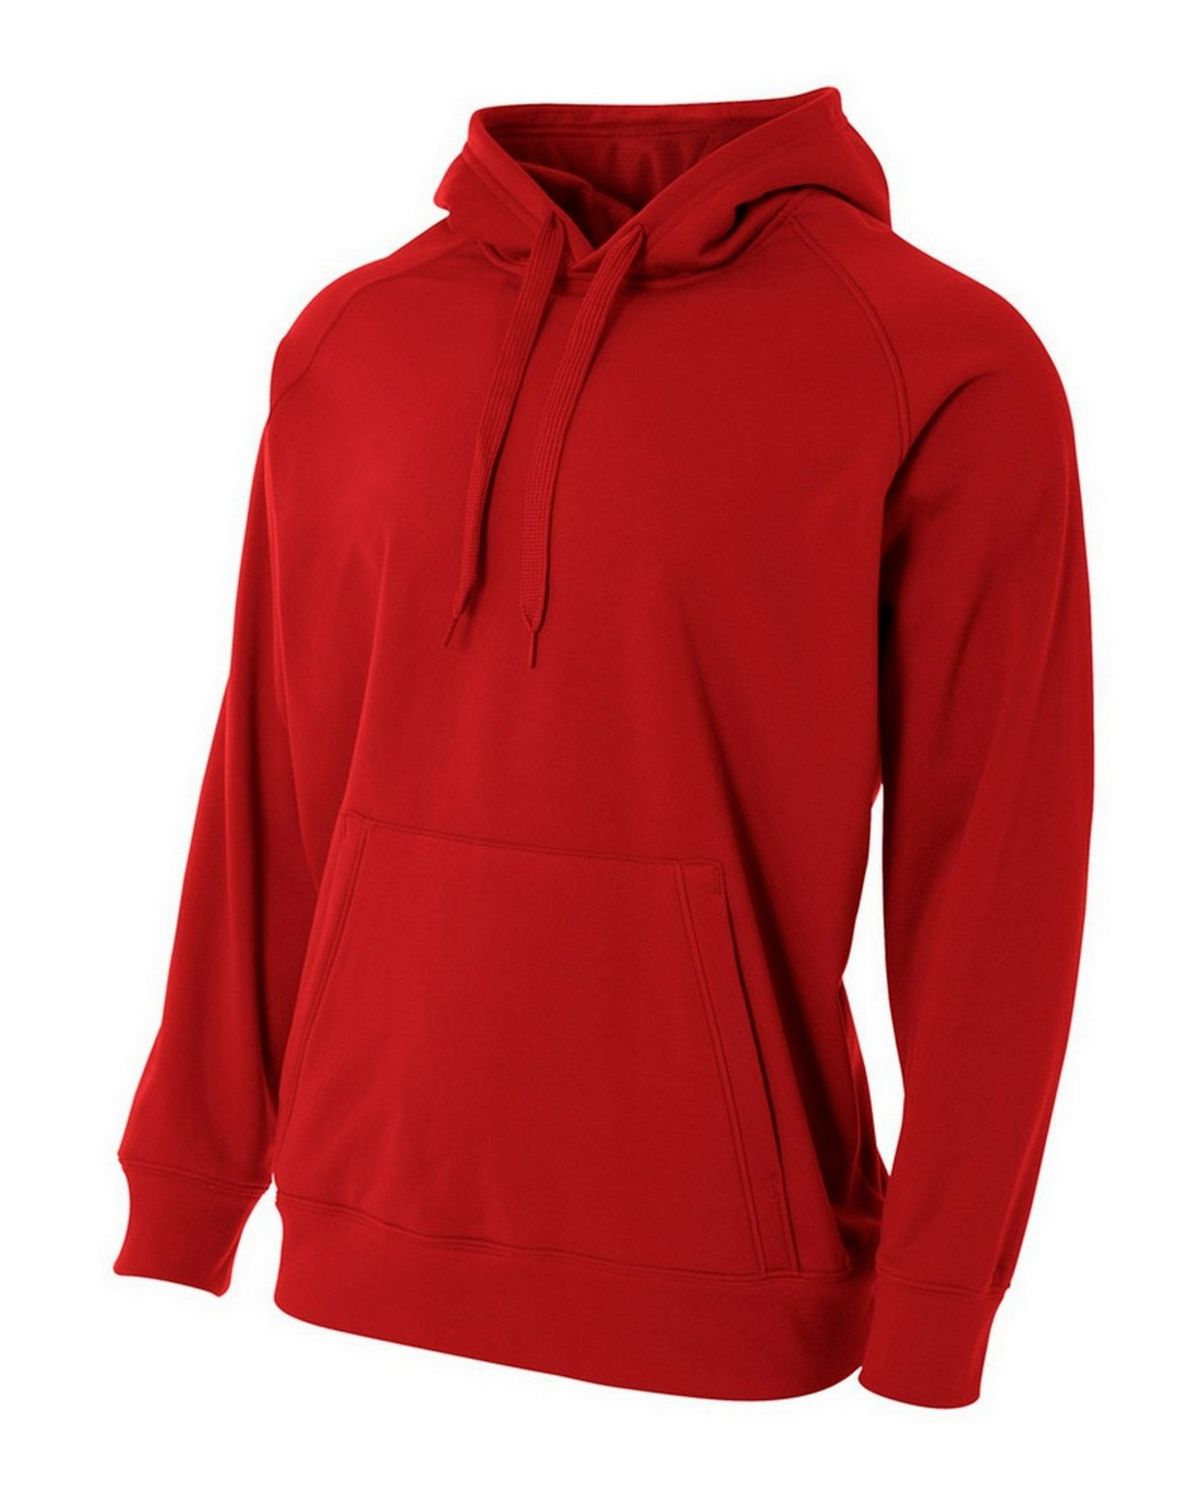 A4 NB4237 Youth Solid Tech Pullover - Scarlet Red - XL NB4237